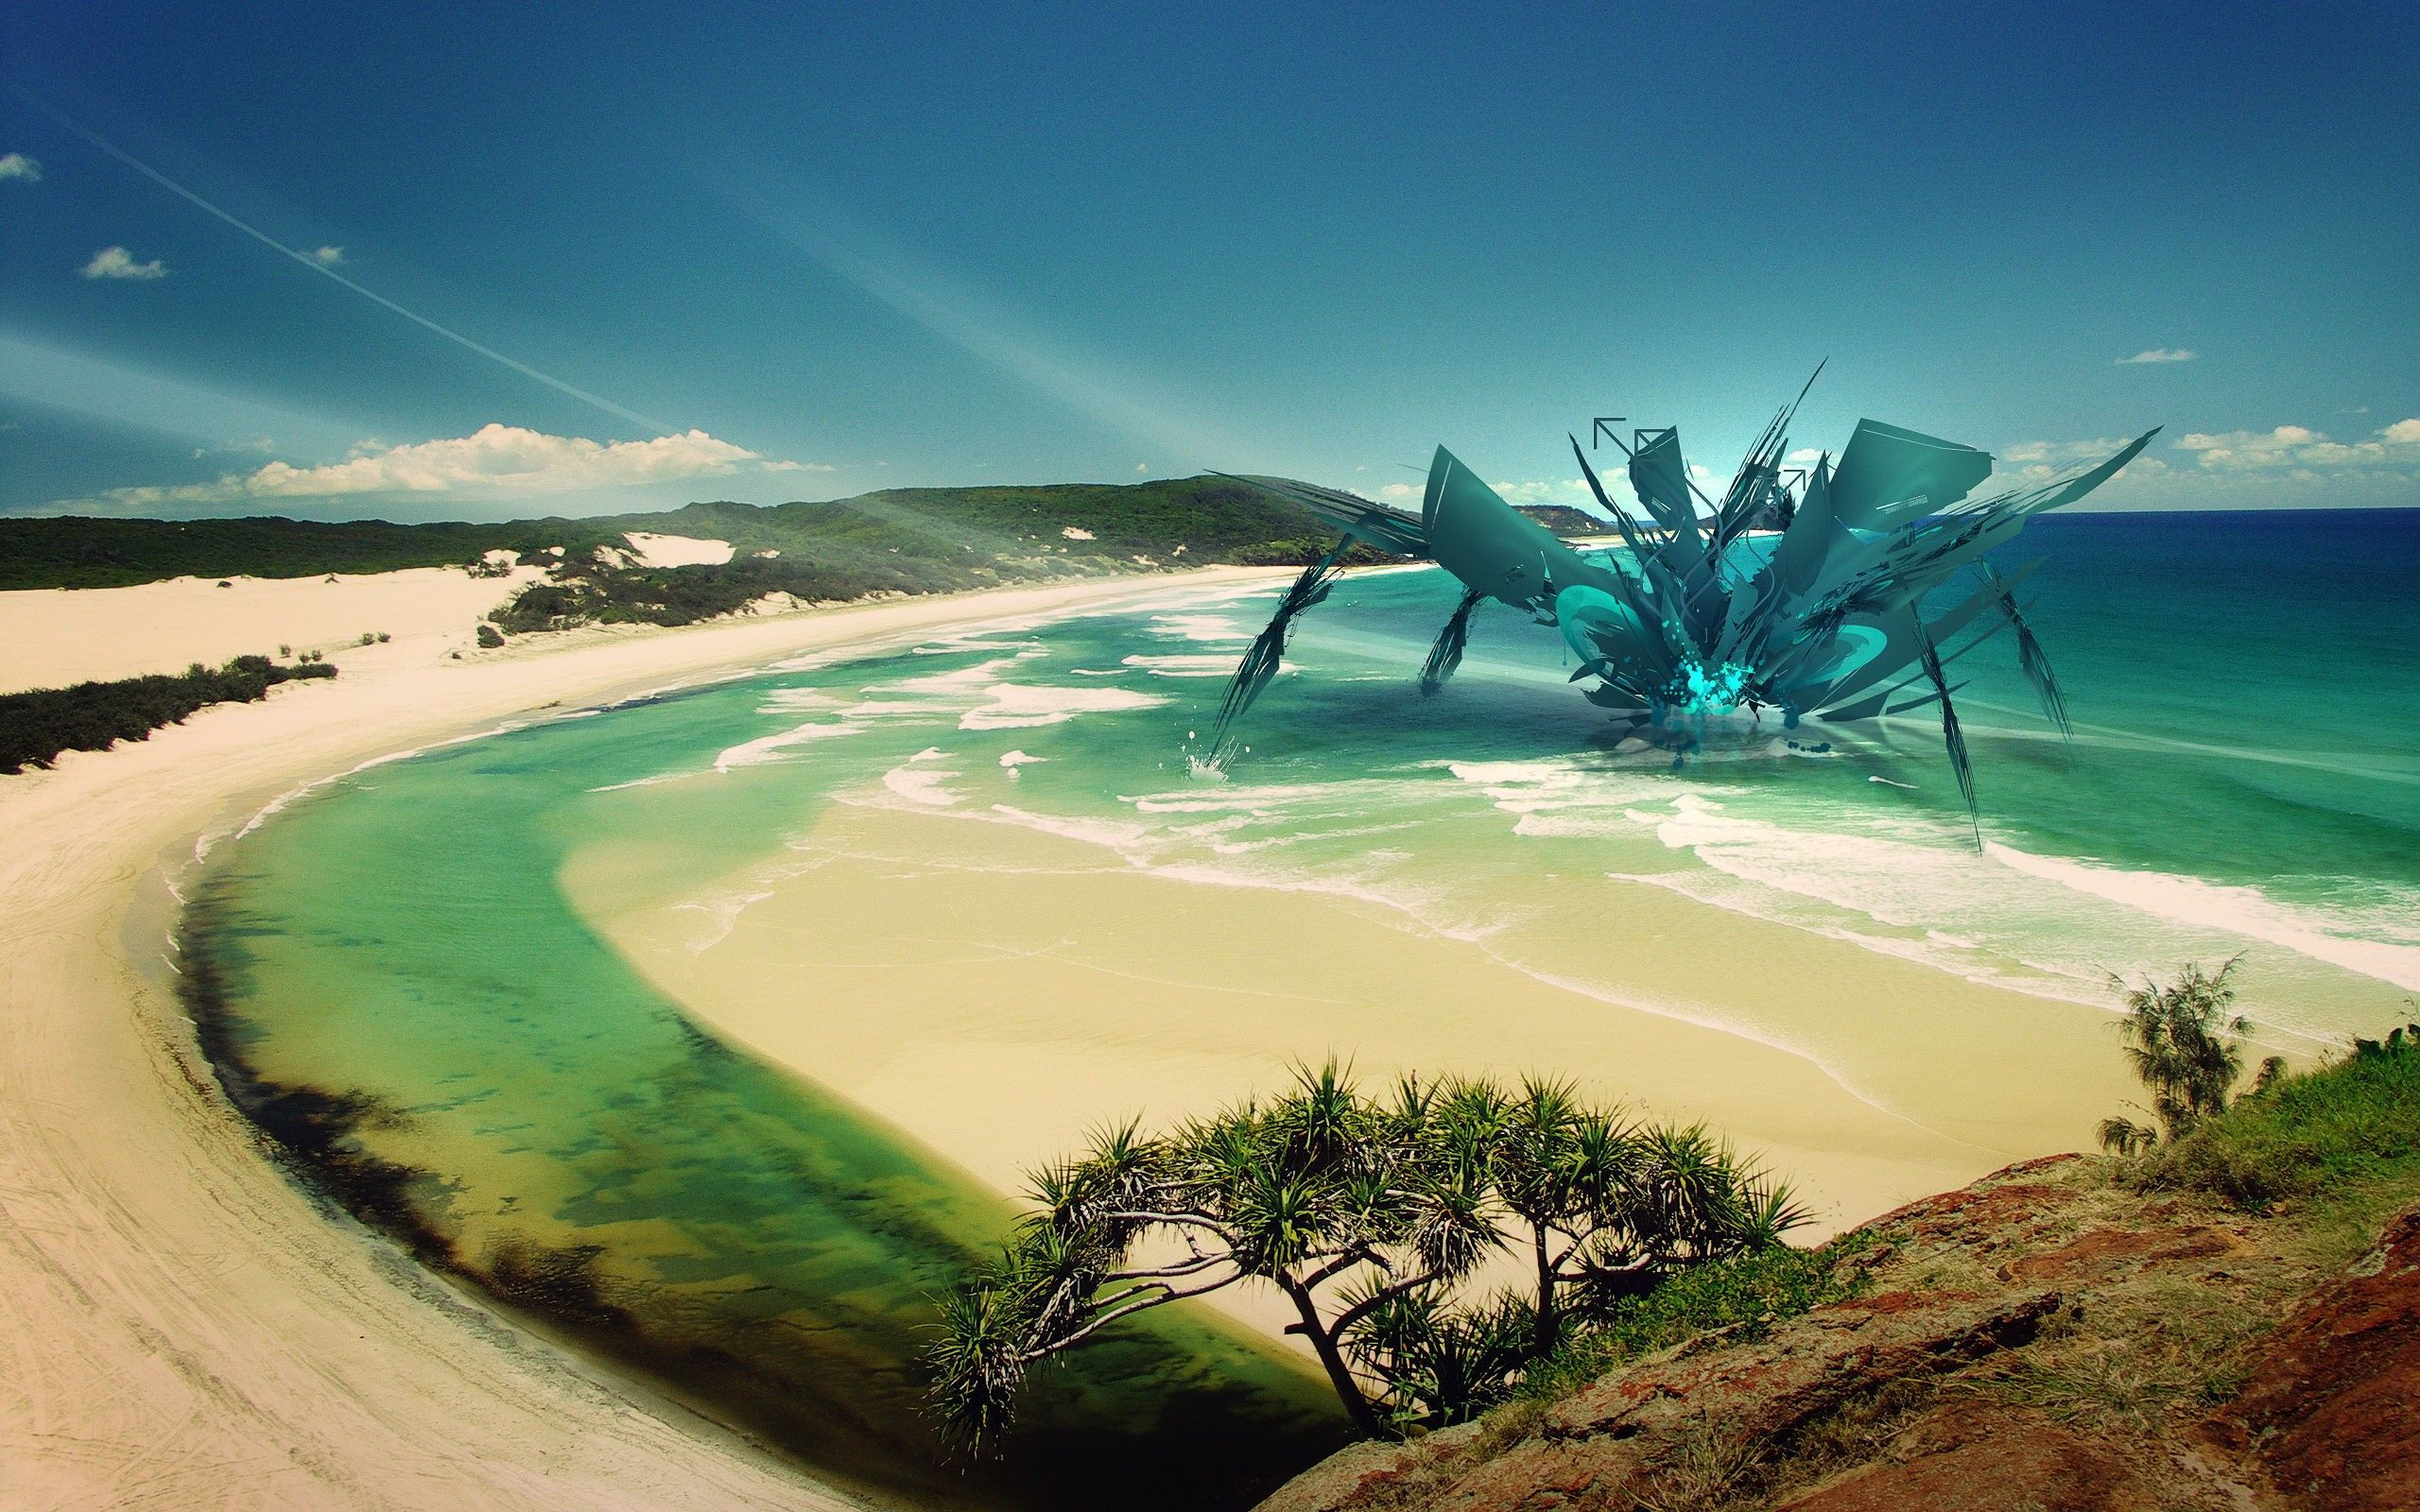 2560x1600 Download Odd Ocean Structure Abstract Wallpaper 2560x1600 ...